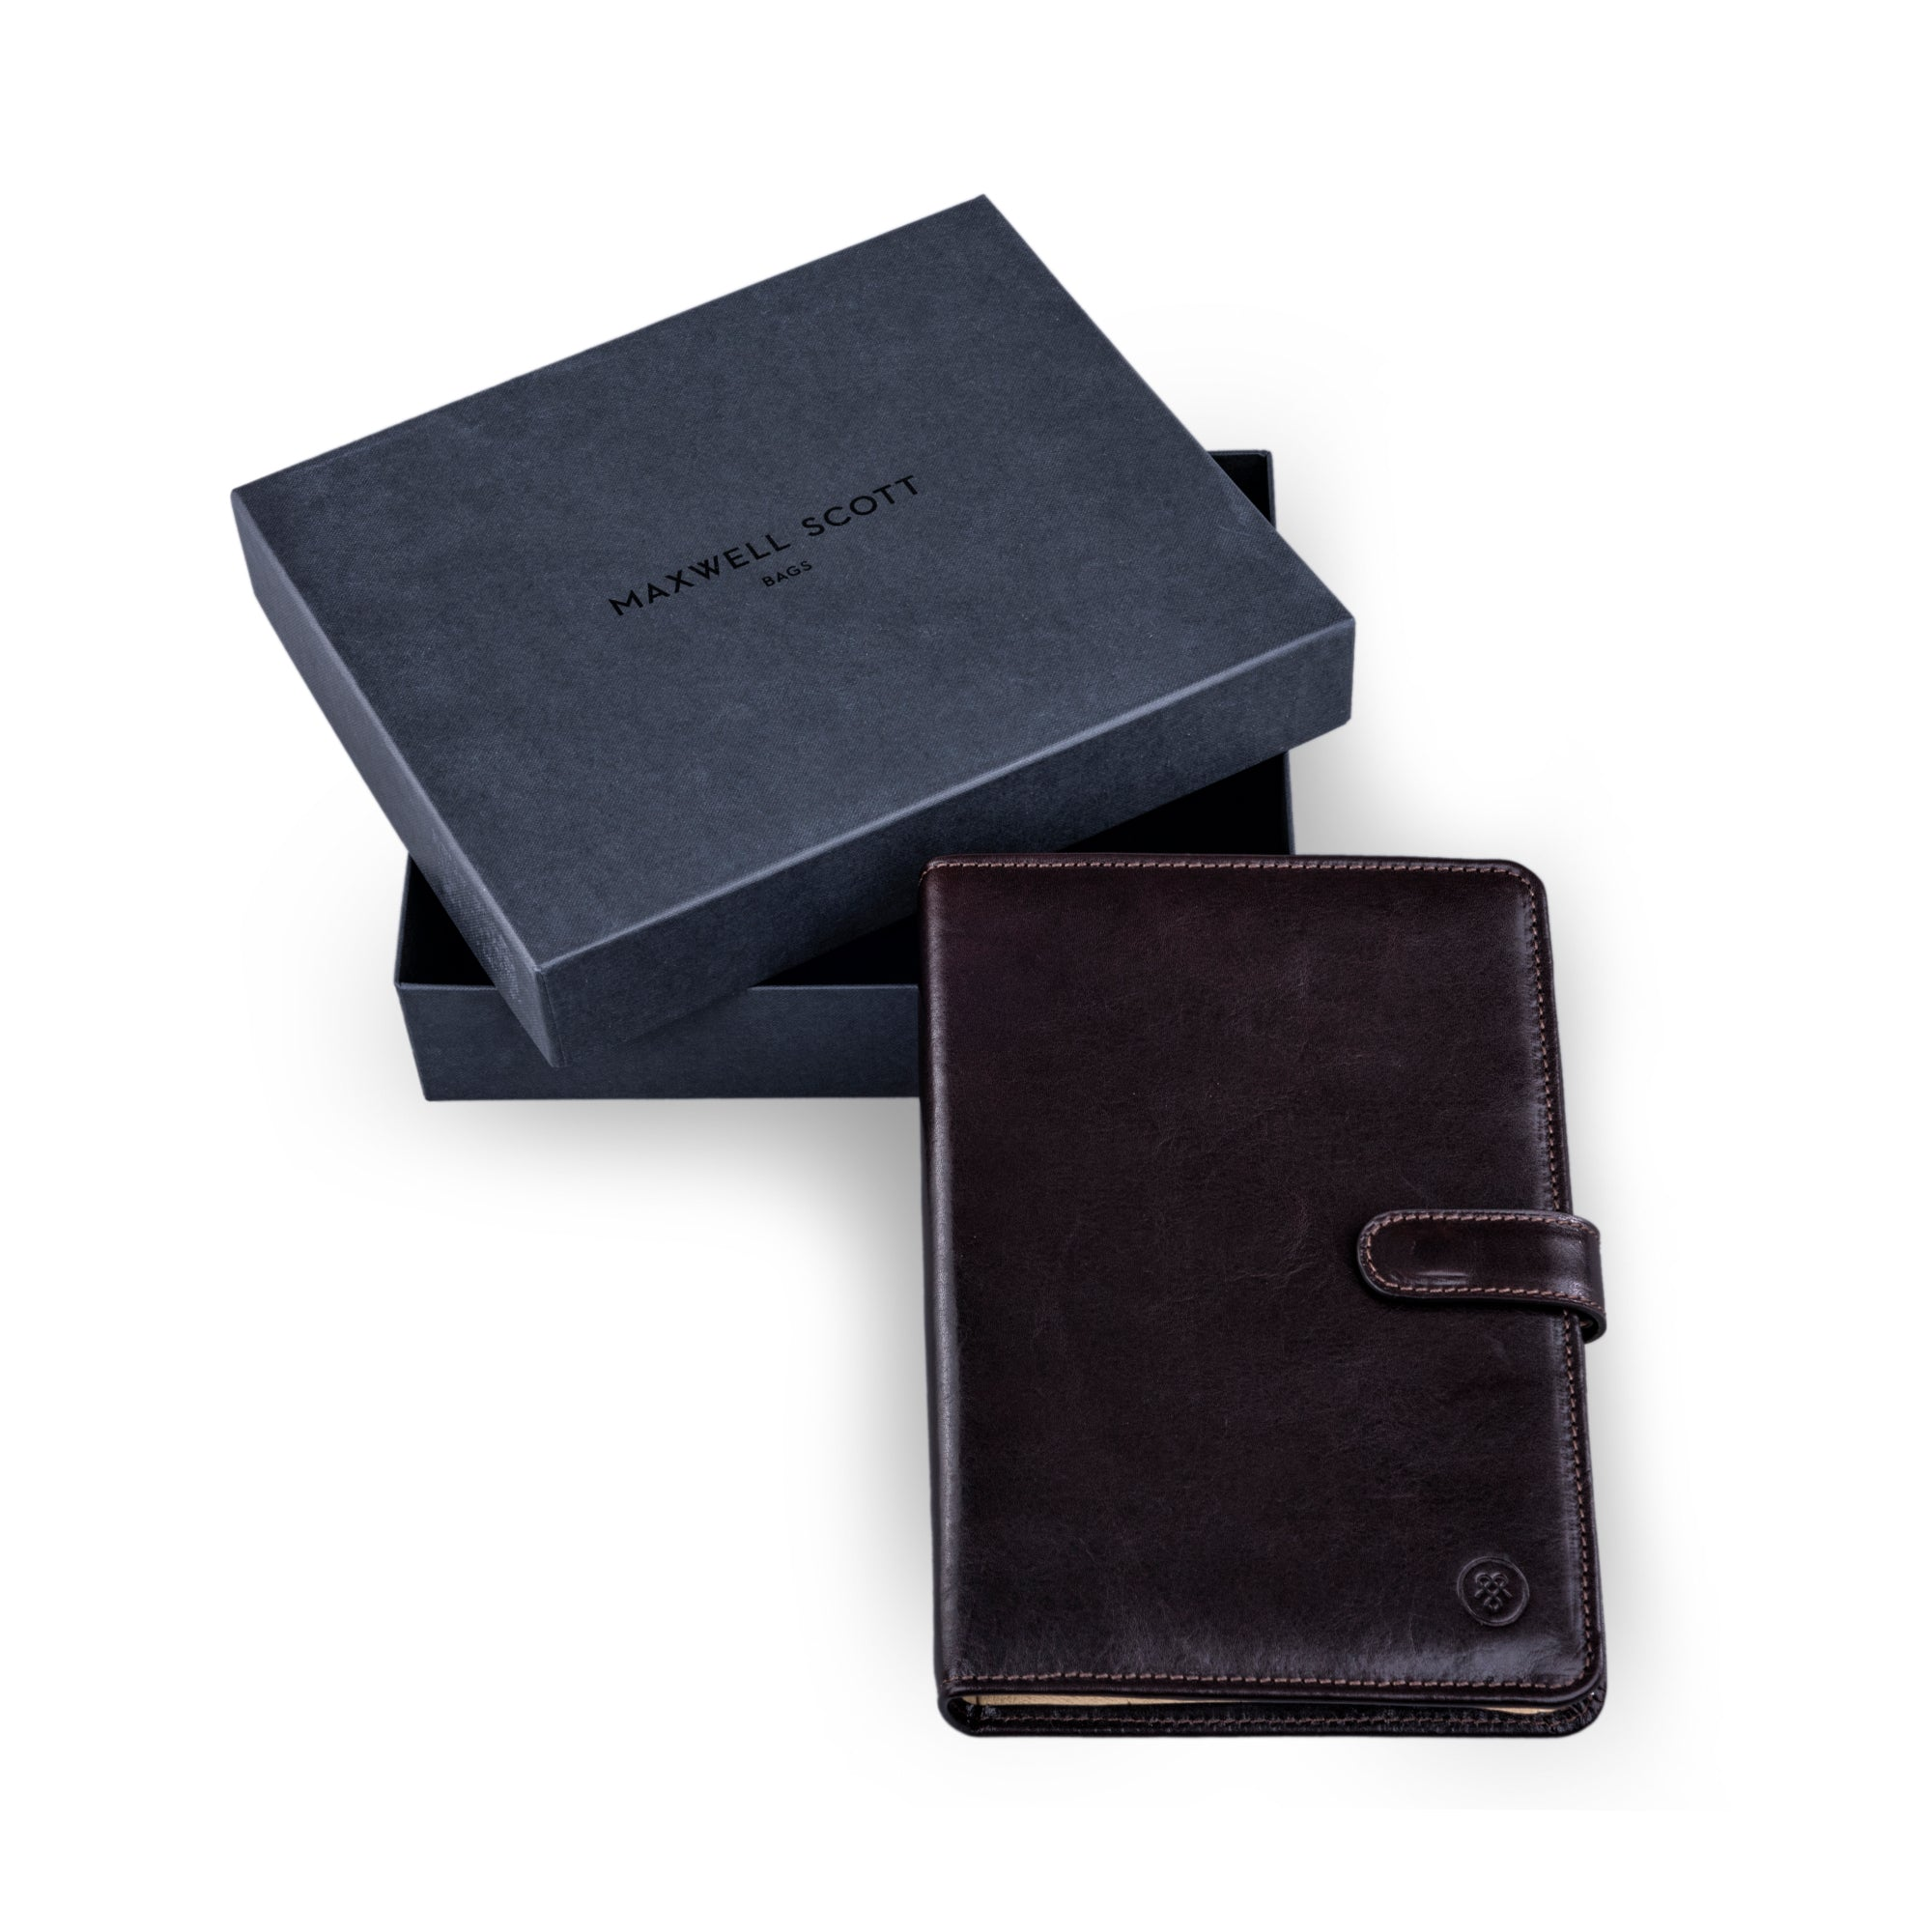 Image 5 of the Chocolate Leather Address book